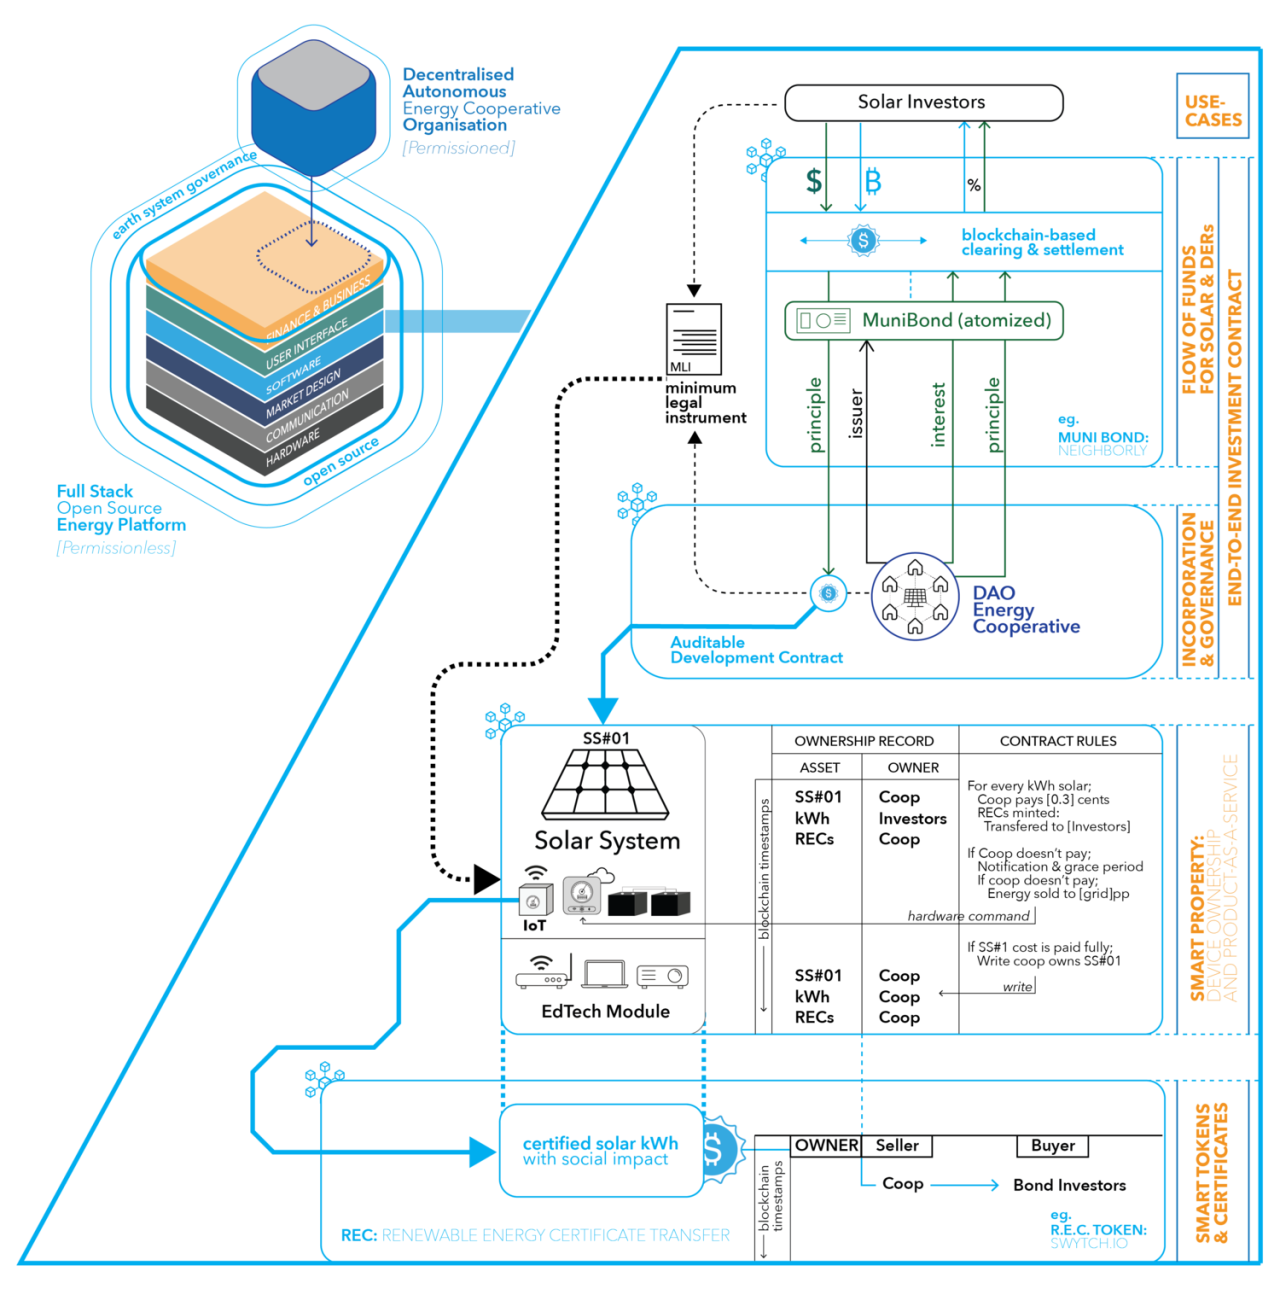 Diagram of openlab systems architecture